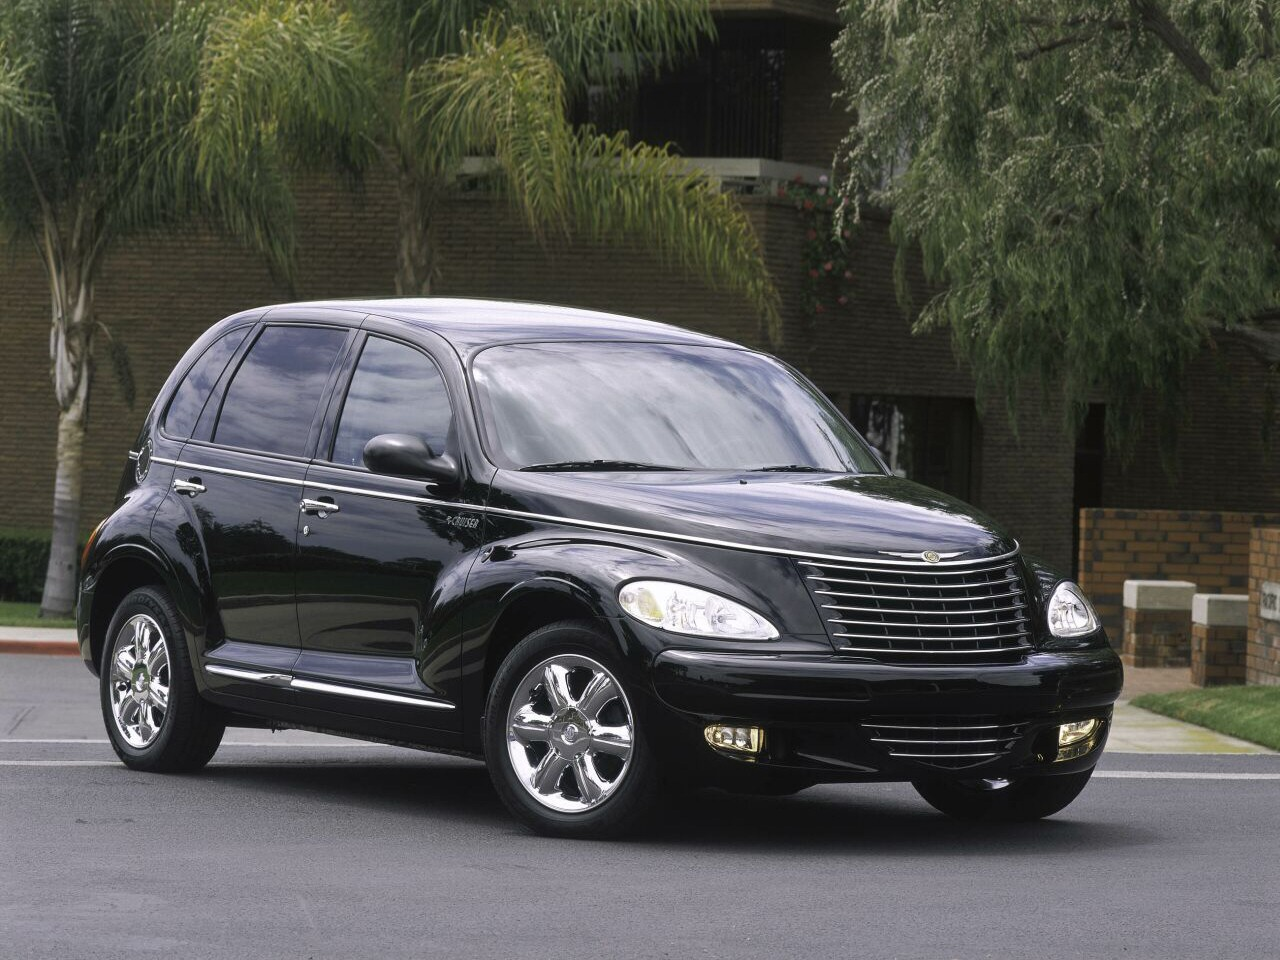 mojagaraza chrysler pt cruiser 2000 2008 mojagara a. Black Bedroom Furniture Sets. Home Design Ideas